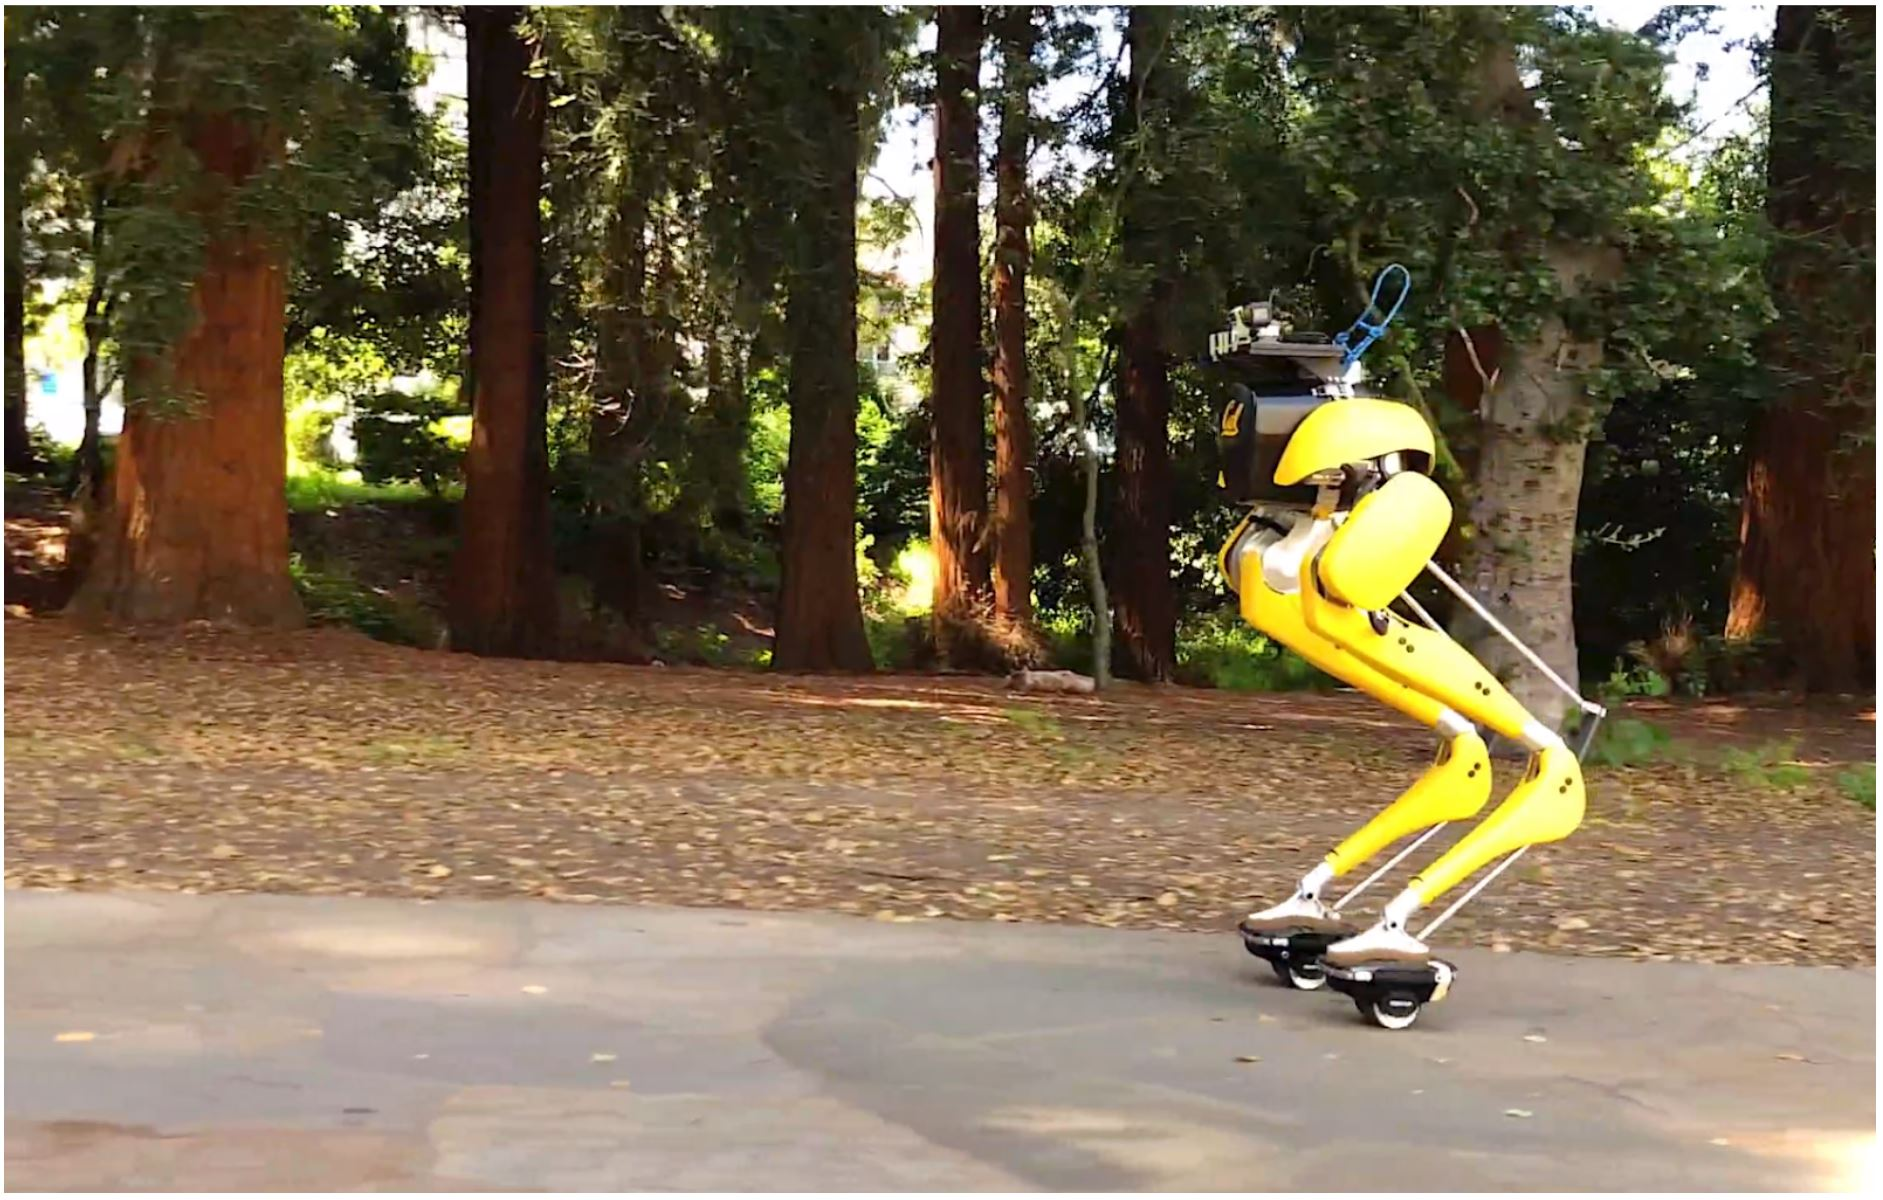 Feedback Control for Autonomous Riding of Hovershoes by a Cassie Bipedal Robot